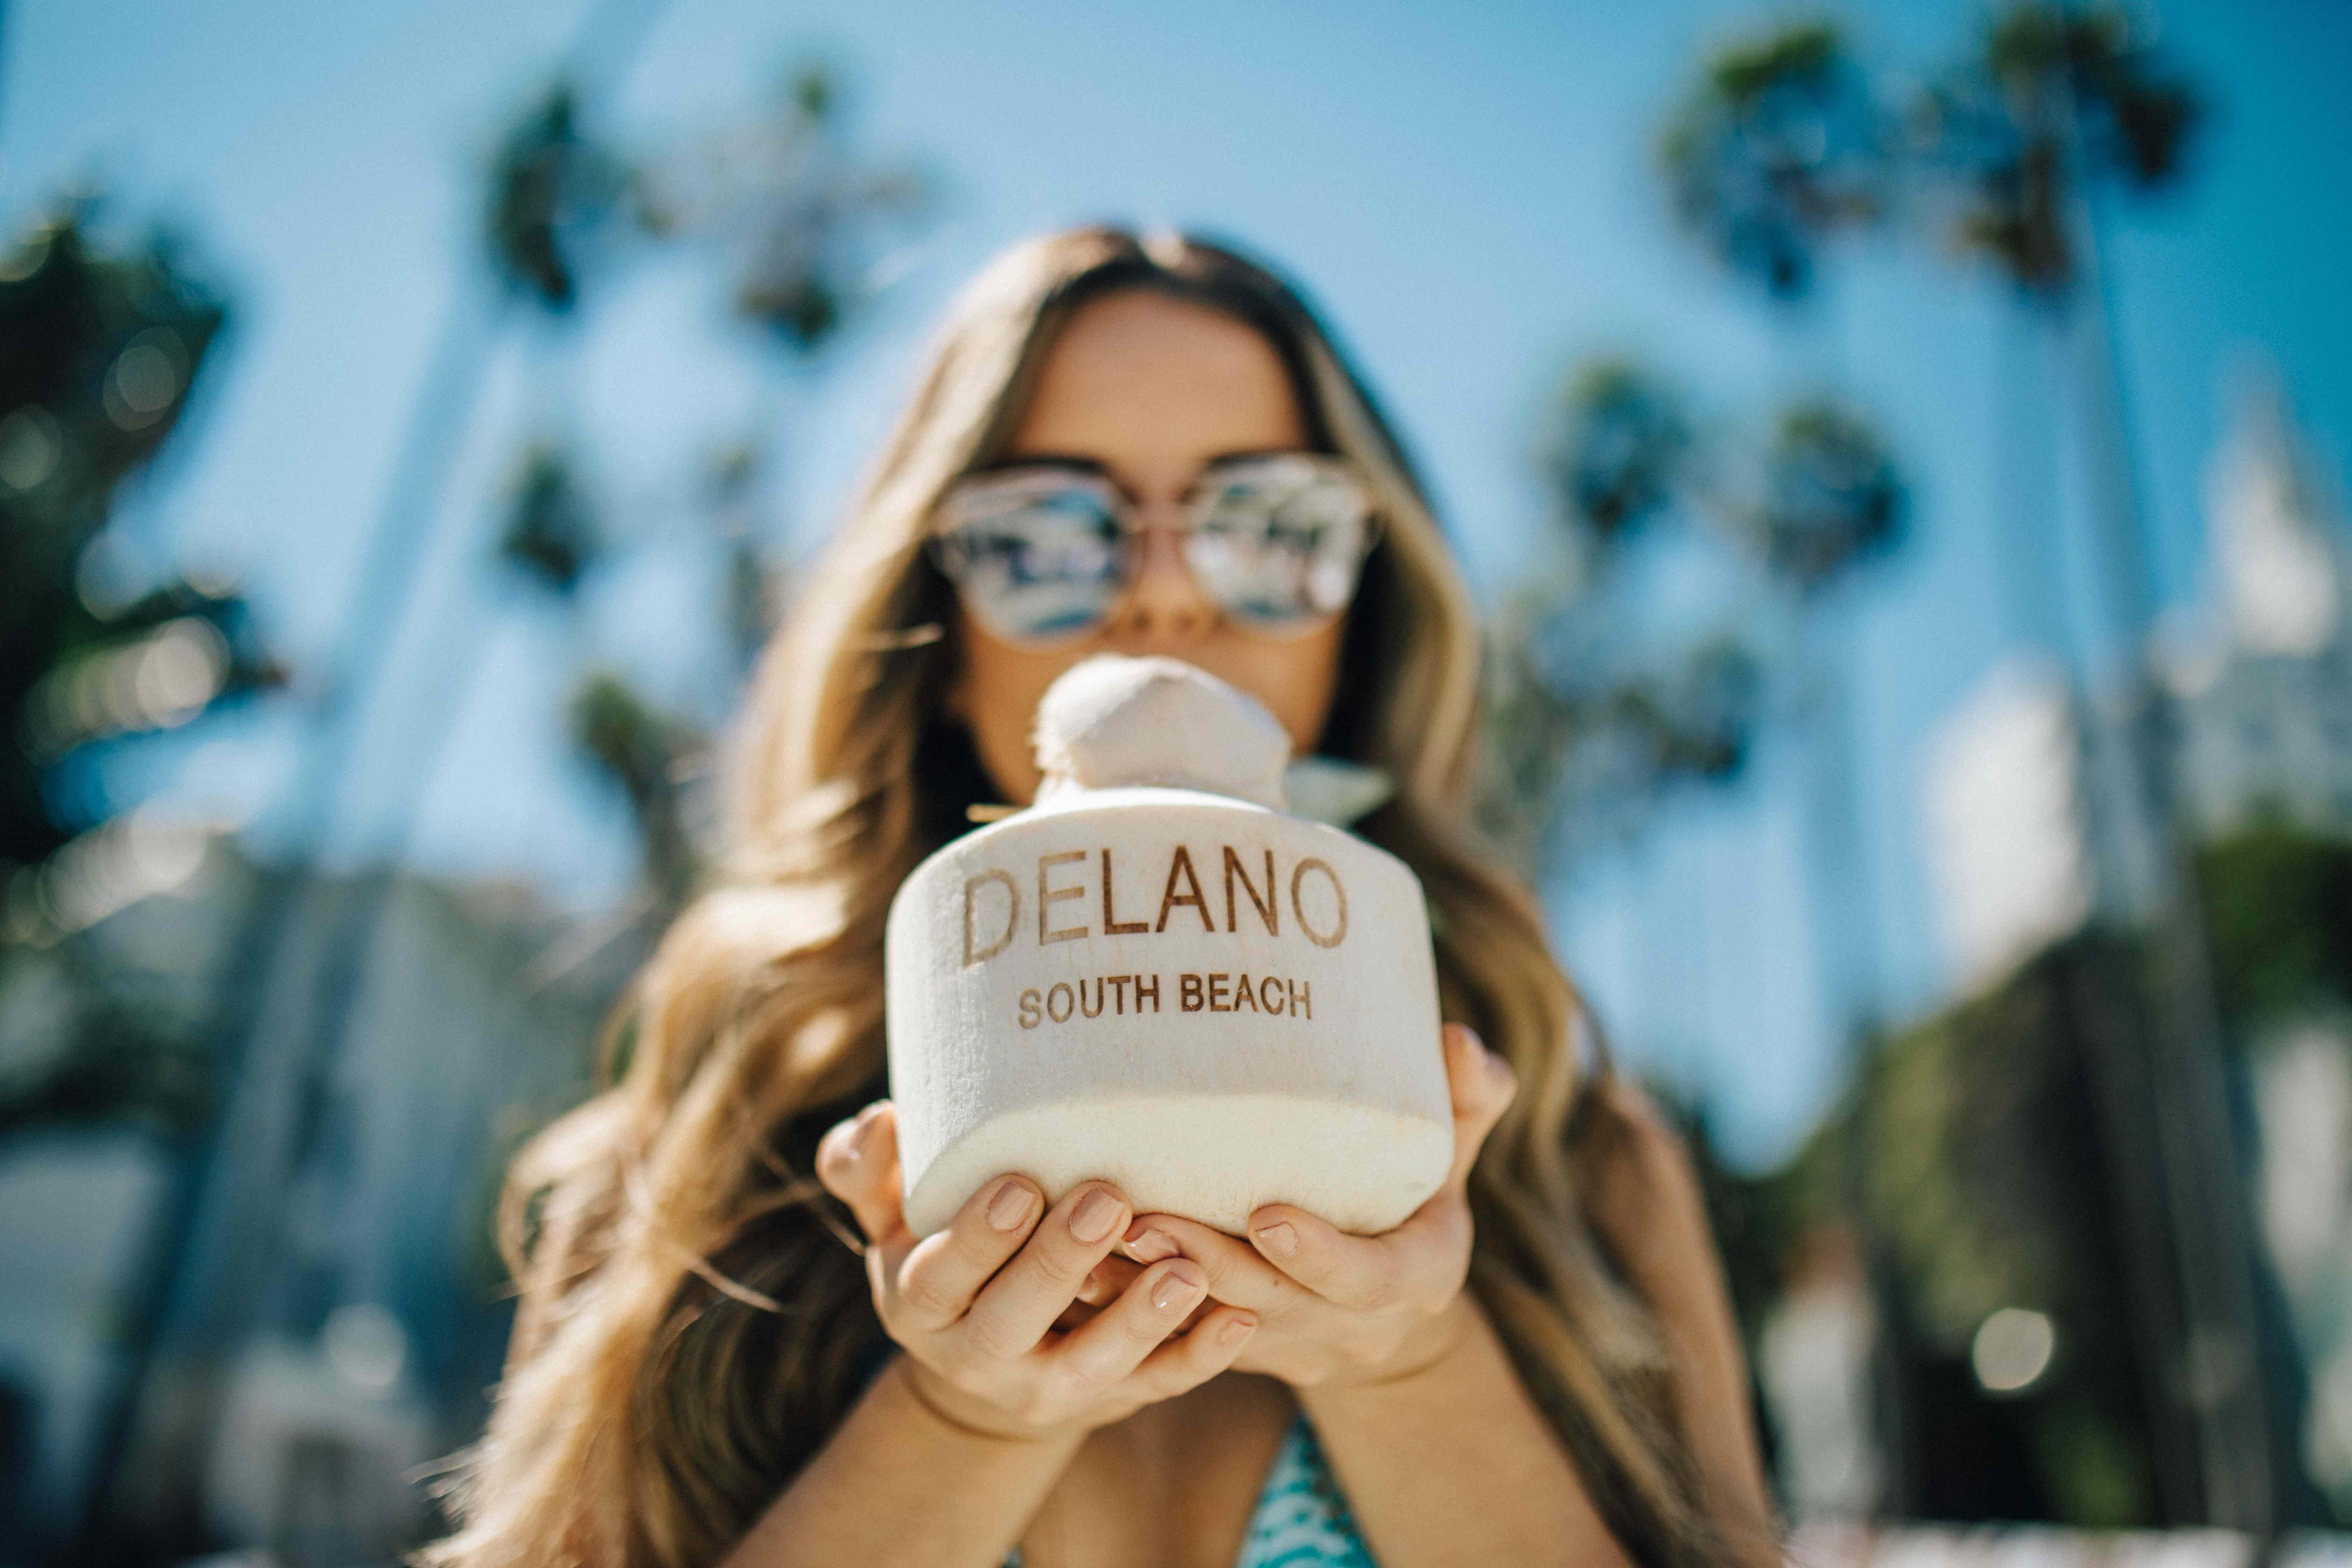 woman drinks out of coconut that says Delano South Beach